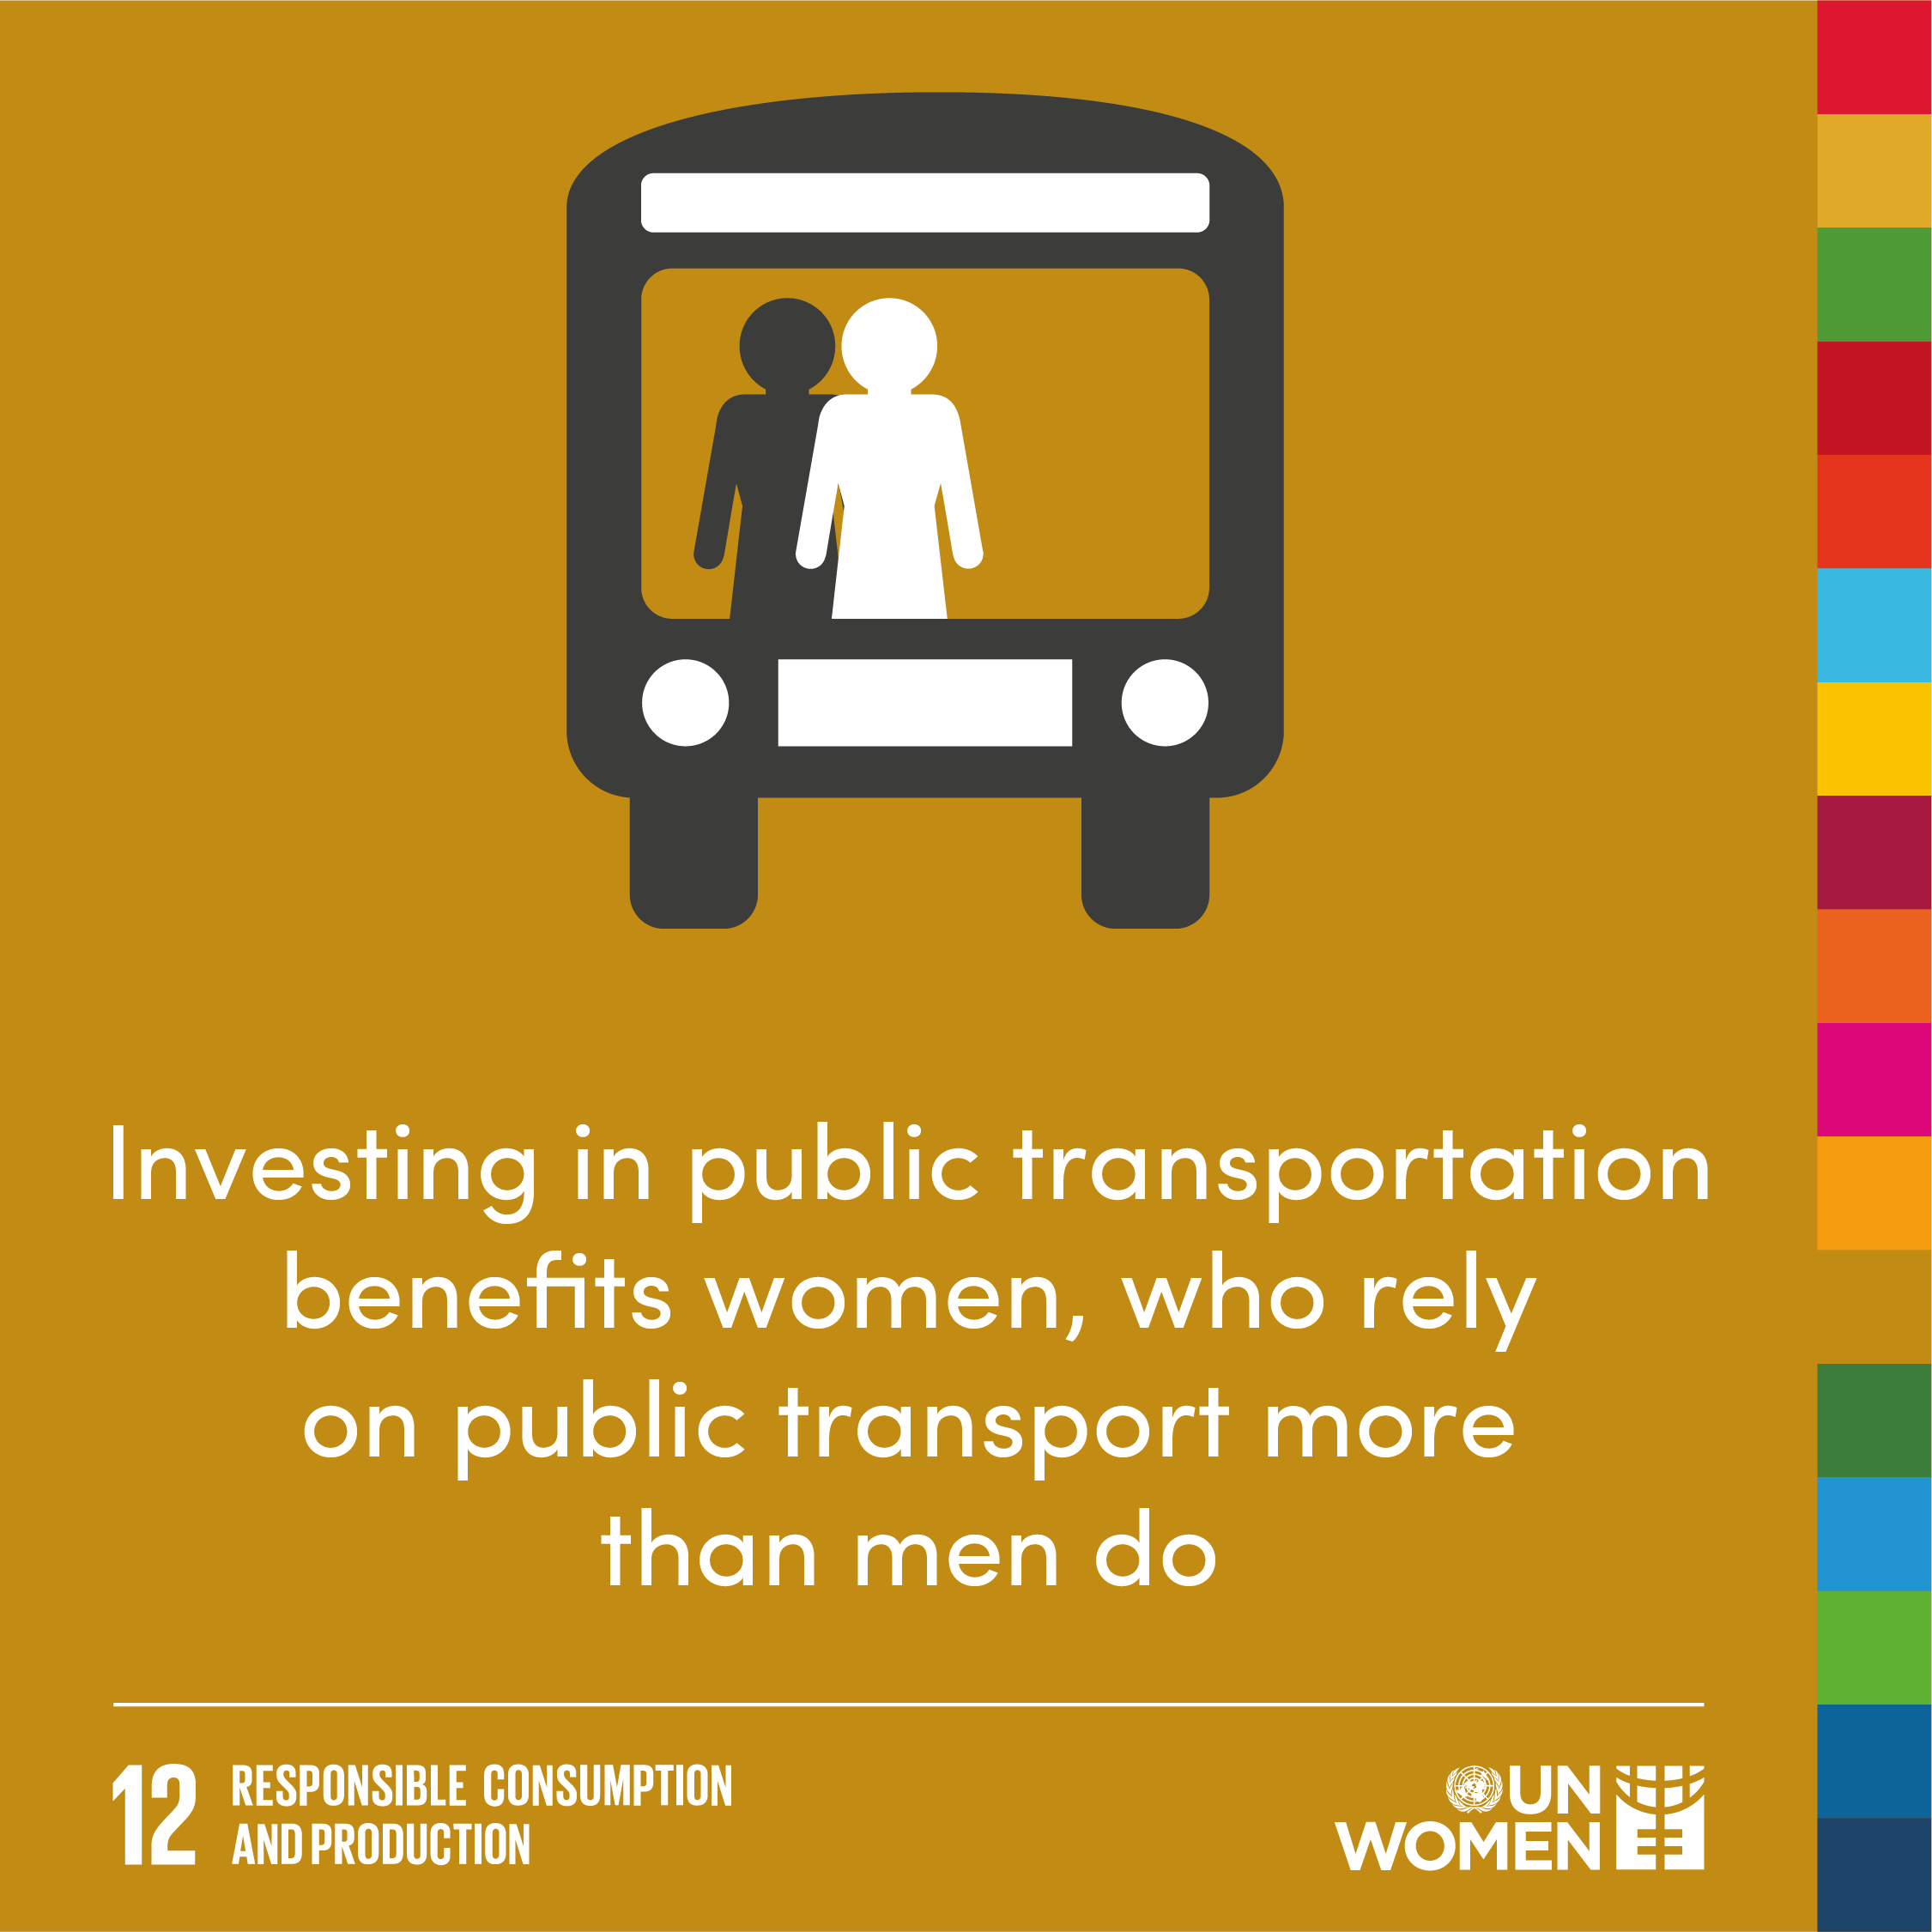 Investing in public transportation benefits women, who rely on public transport more than men do